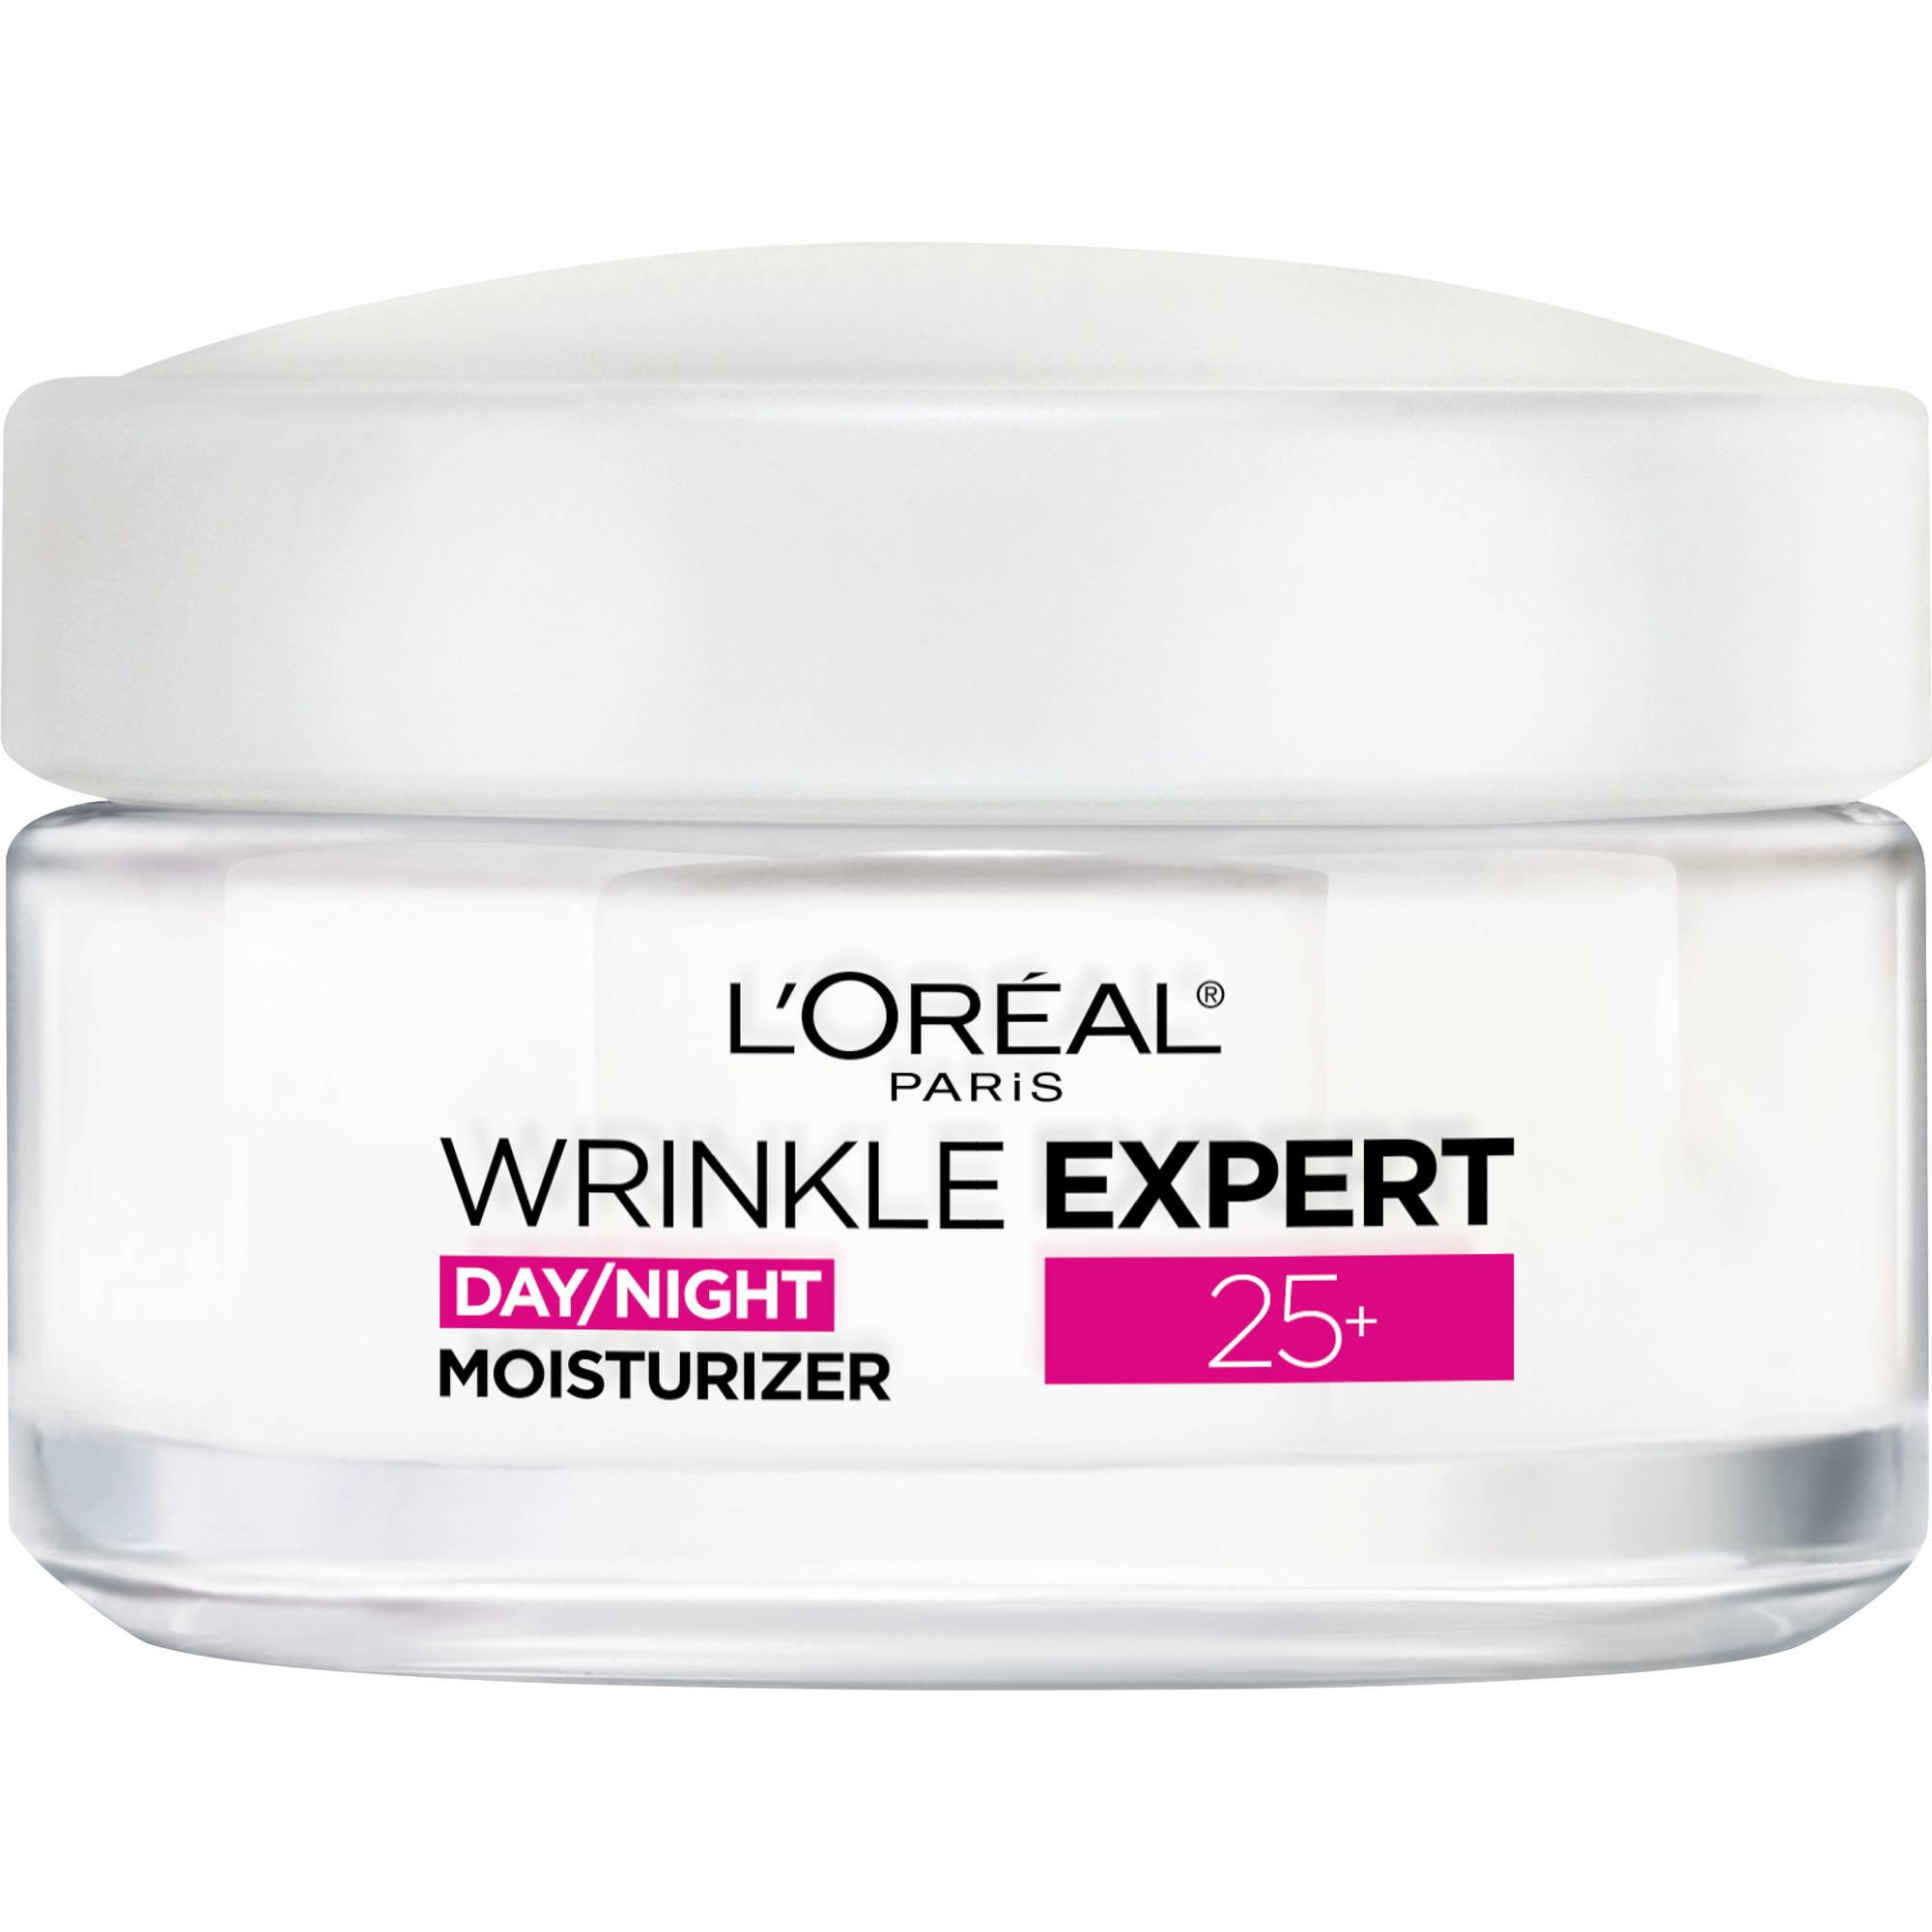 L'Oreal Paris Wrinkle Expert 25+ Day & Night Moisturizer, 1.7 oz - Walmart.com